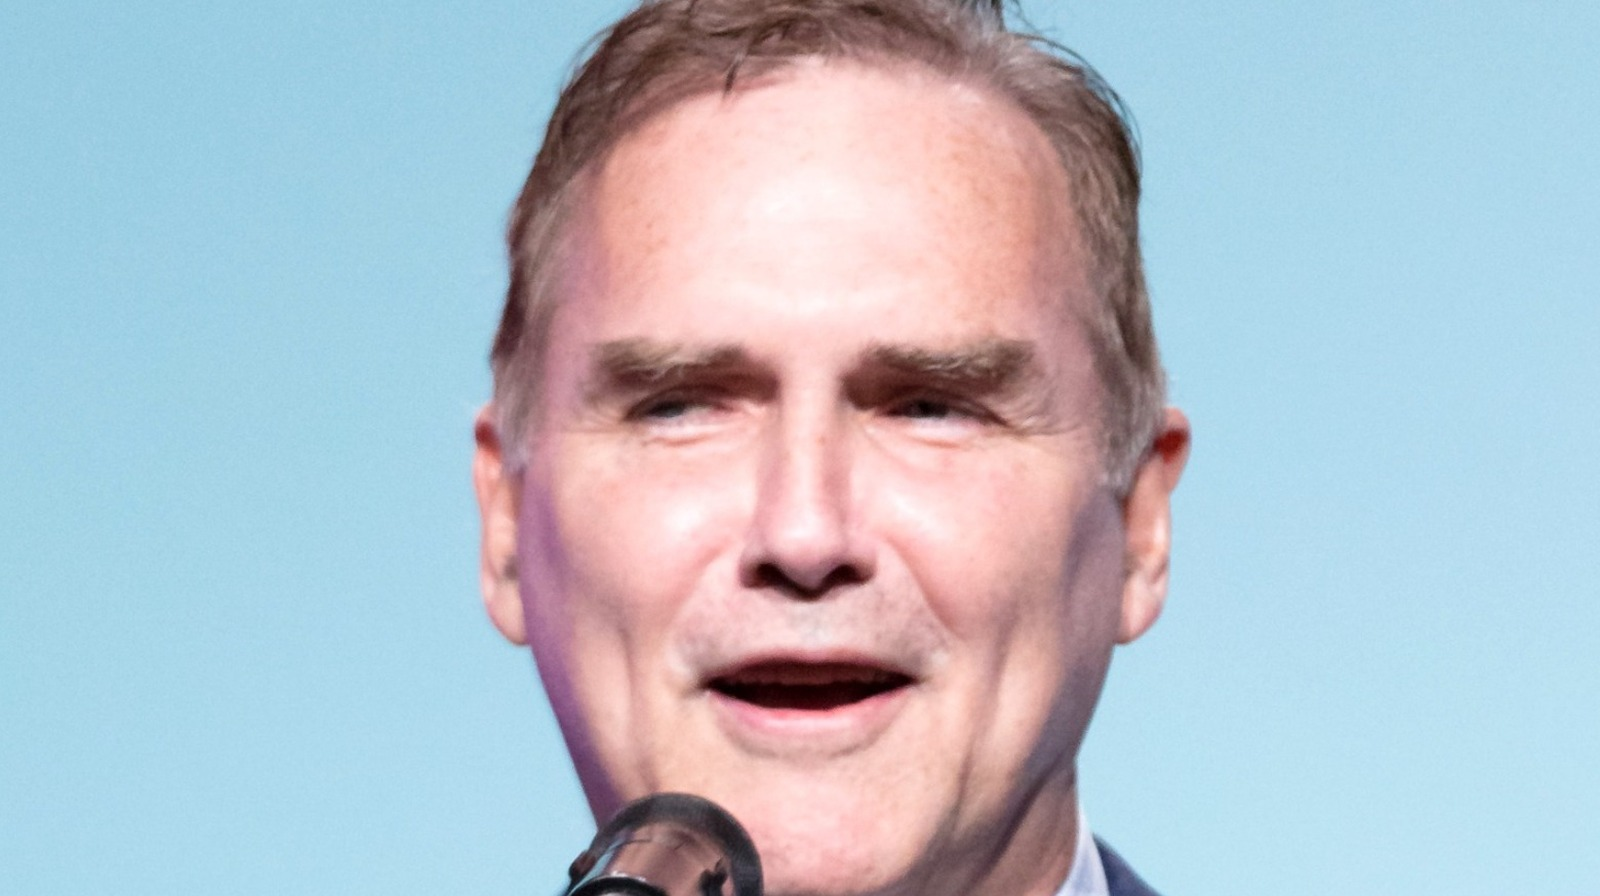 Things You Didn't Know About Norm Macdonald